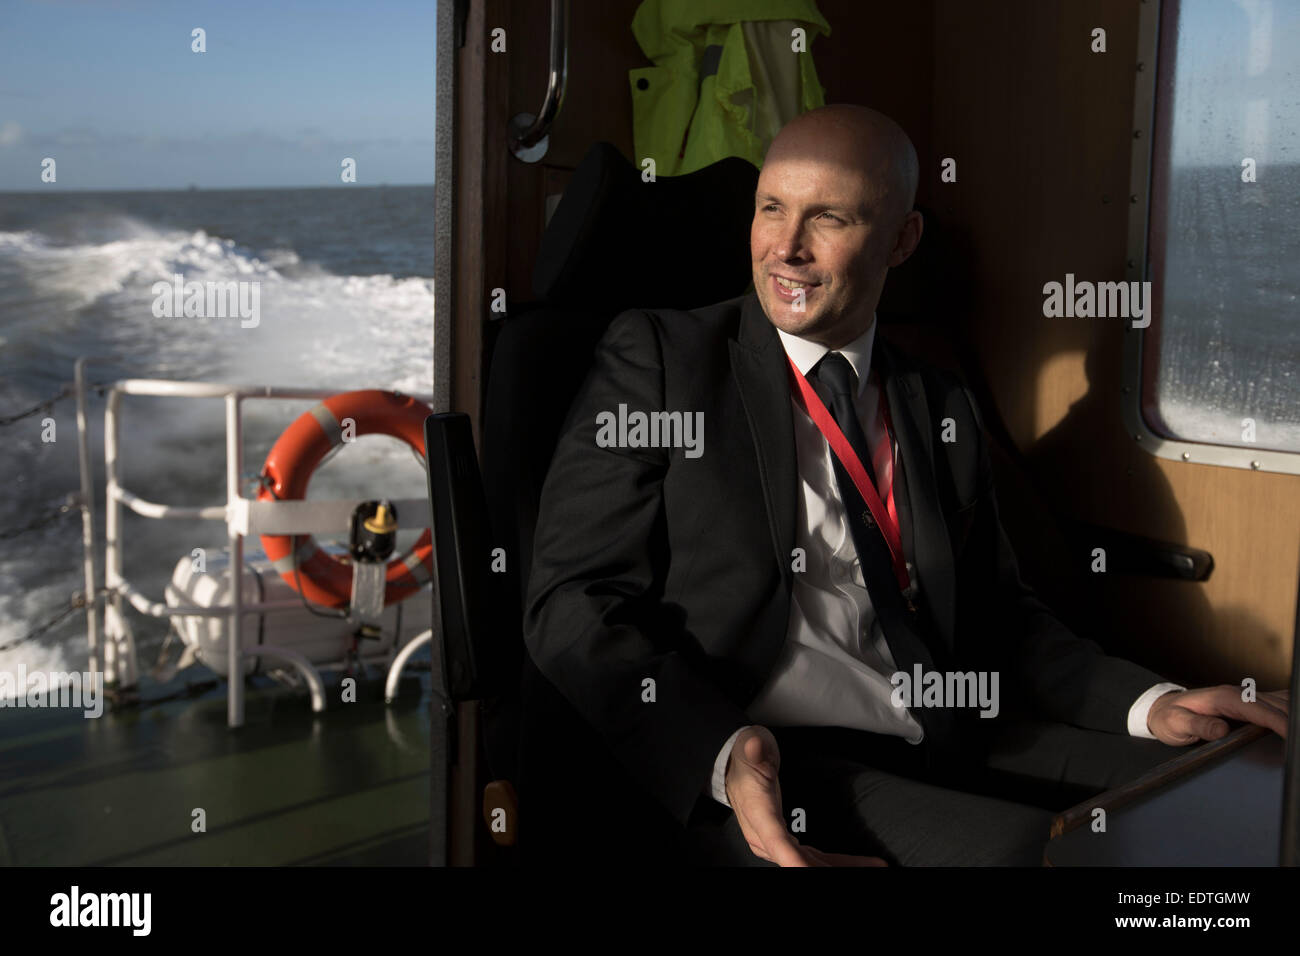 James Smart one of the team of Liverpool pilots employed by Liverpool Pilot Services Ltd on the river Mersey, England, - Stock Image